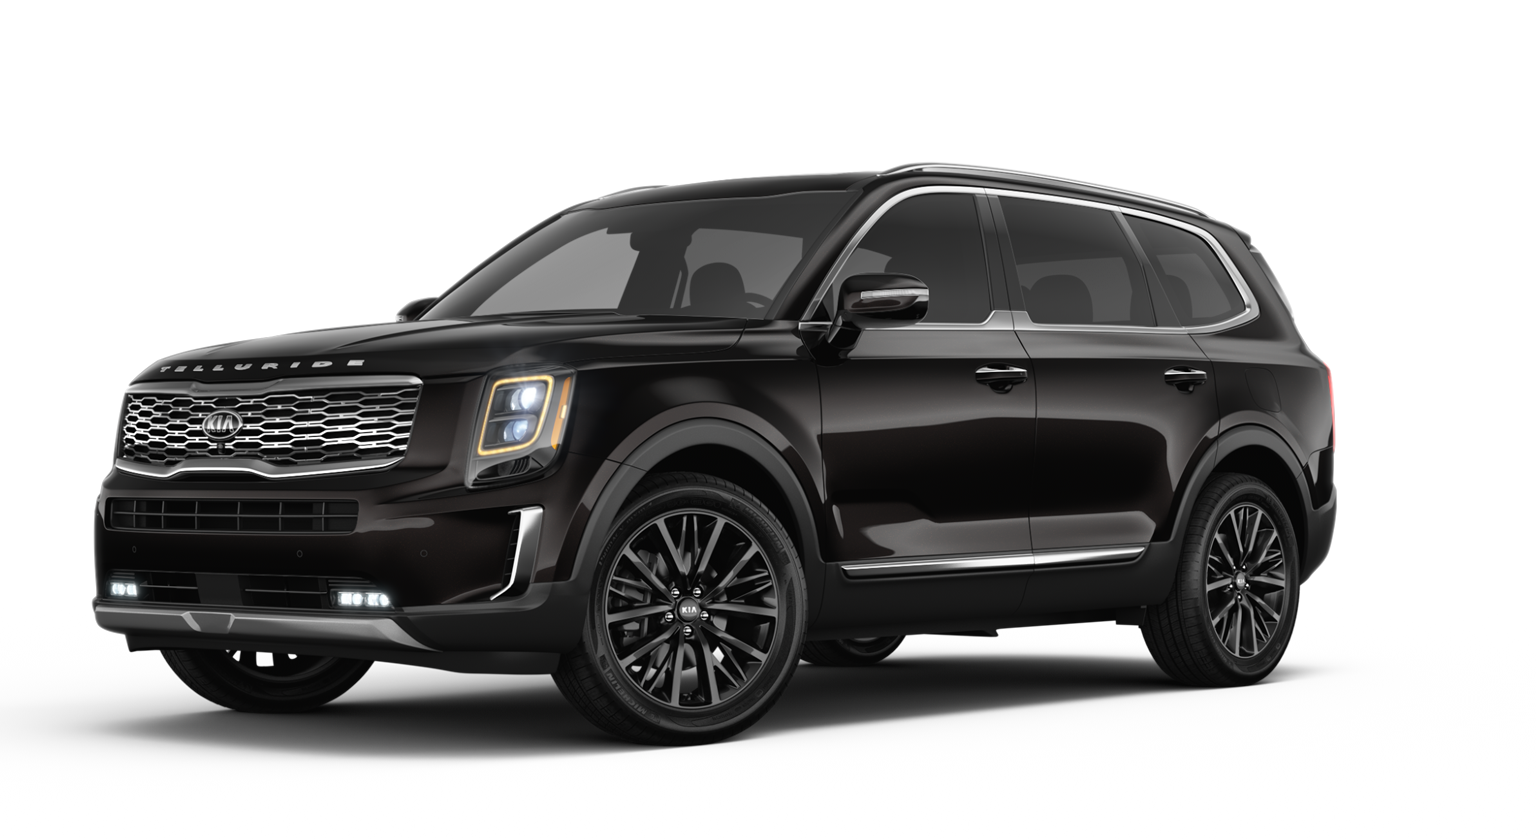 Telluride Sx Exterior Picture With Images Mid Size Suv Best Midsize Suv Best Compact Suv